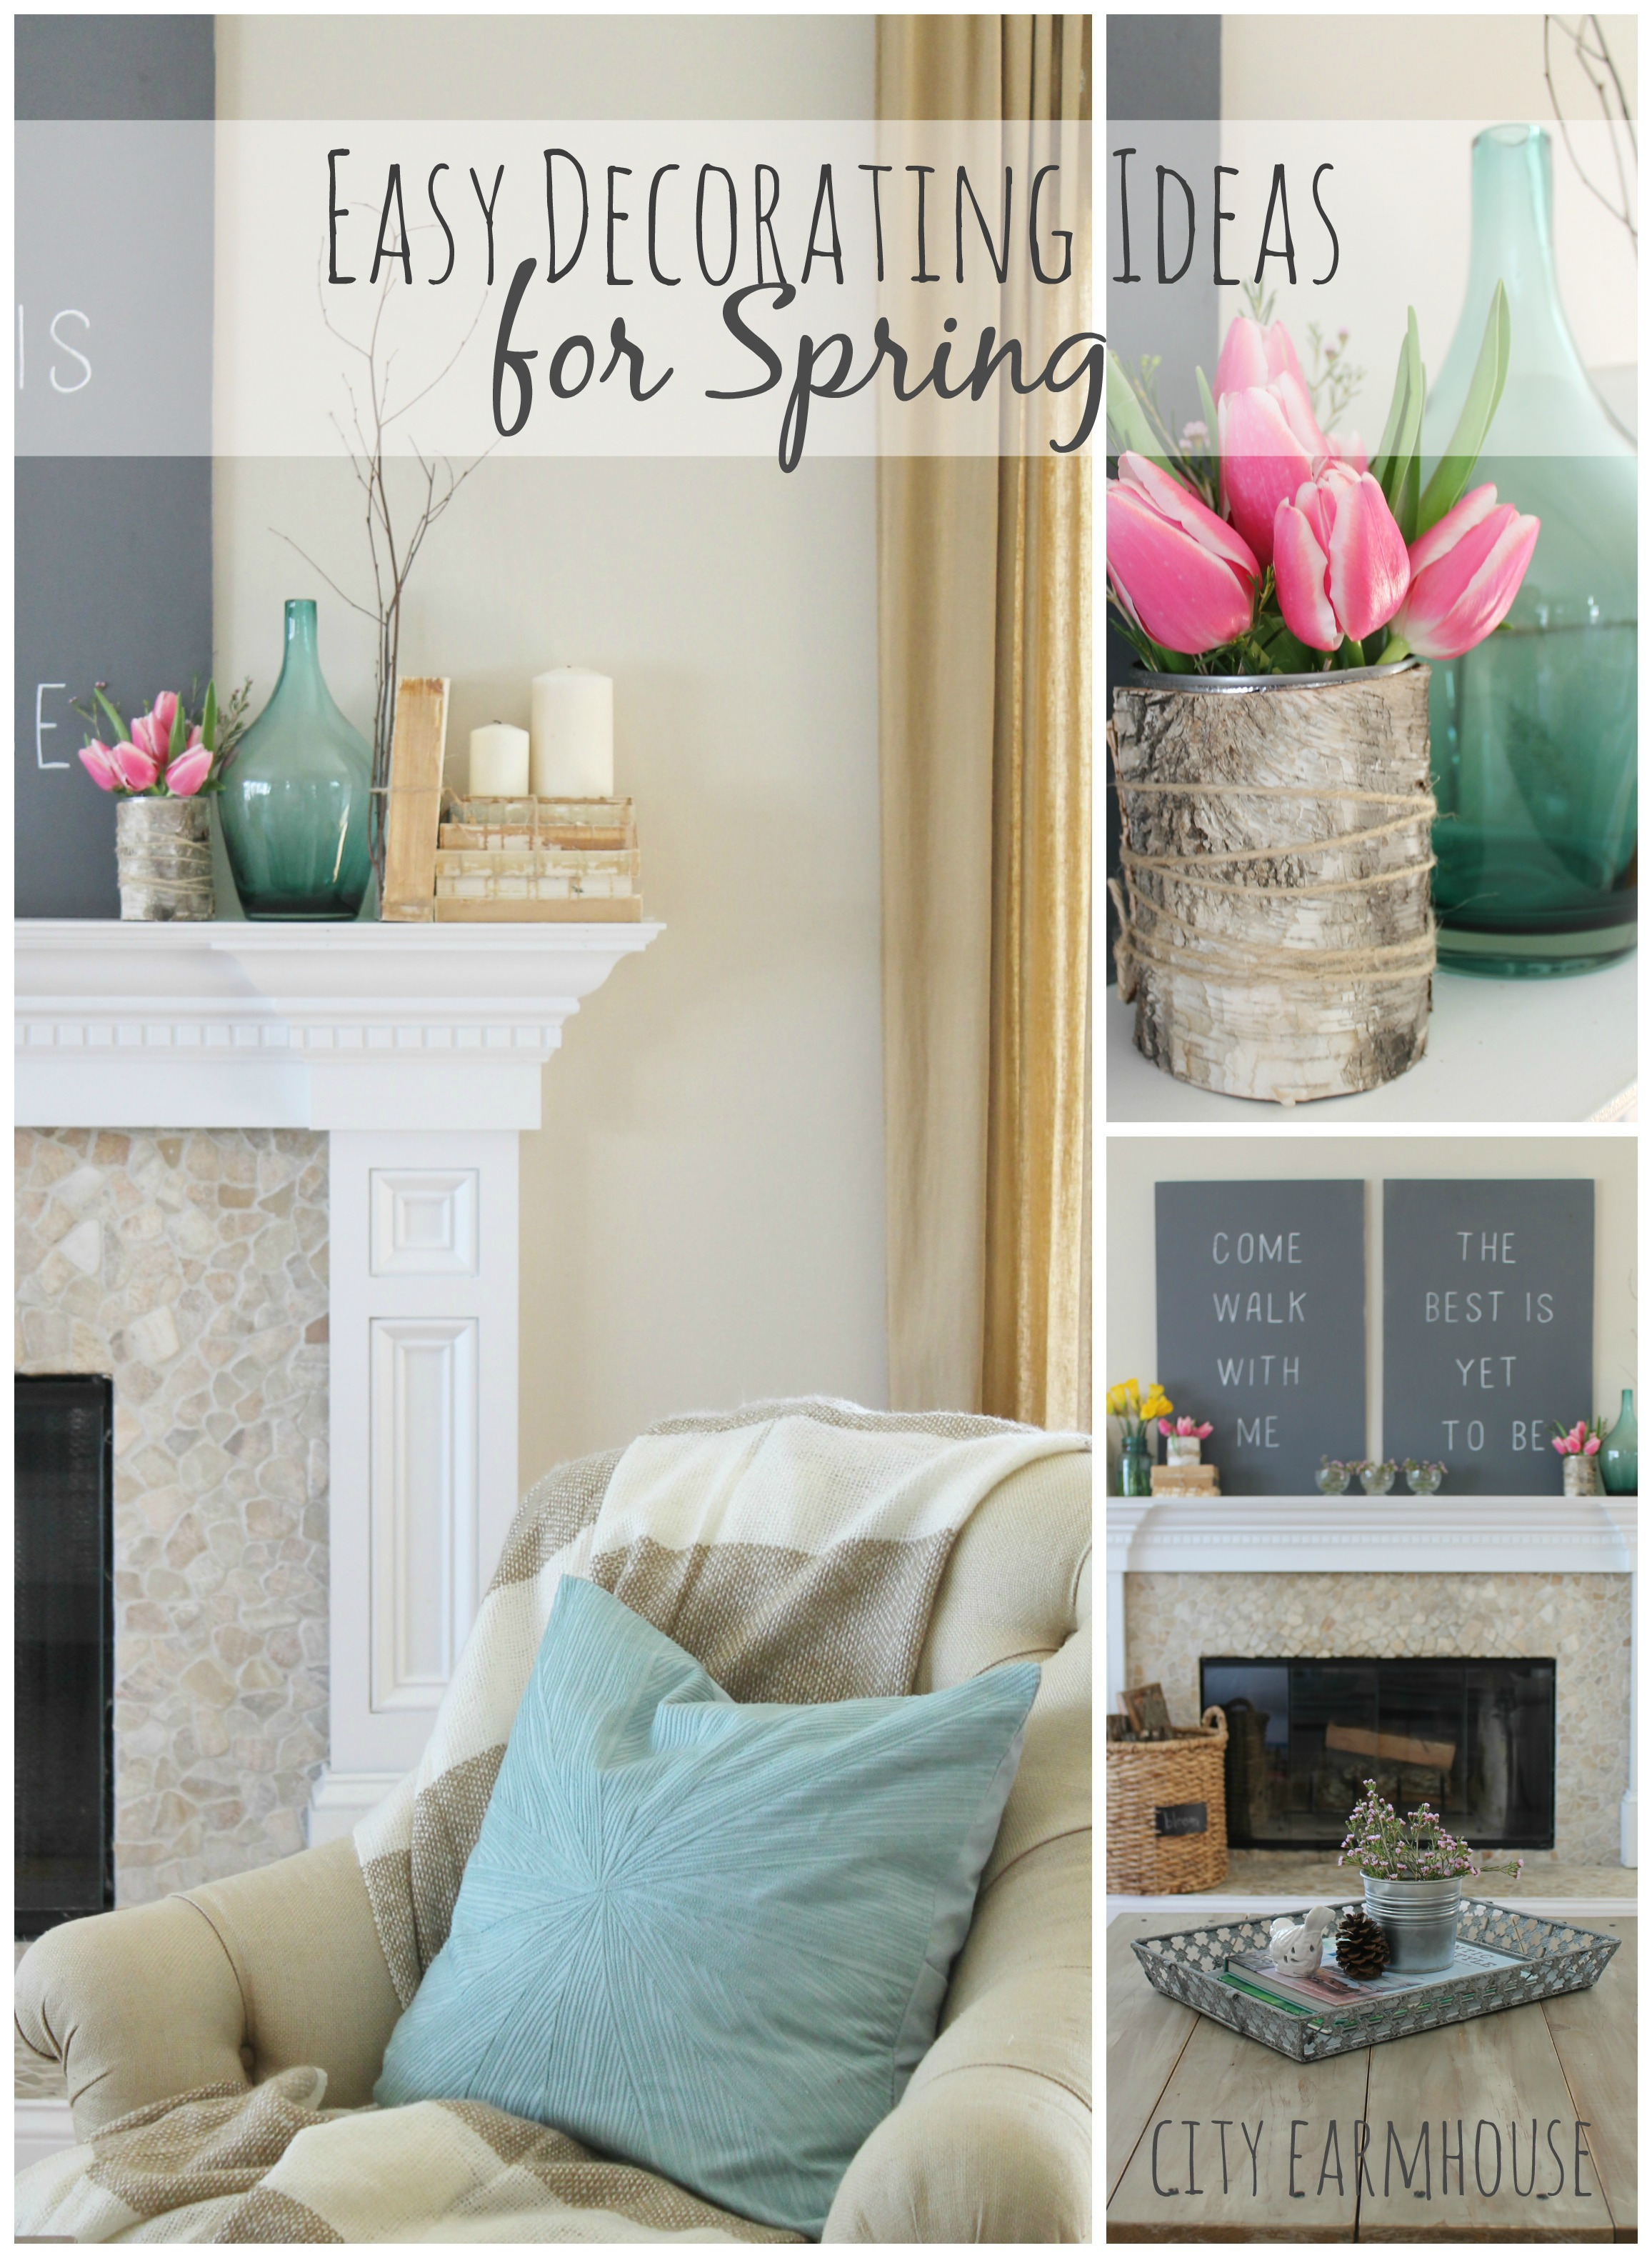 Seasons Of Home  Easy Decorating Ideas for Spring   City Farmhouse Seasons of Home Easy Spring Decorating Ideas  City Farmhouse  1